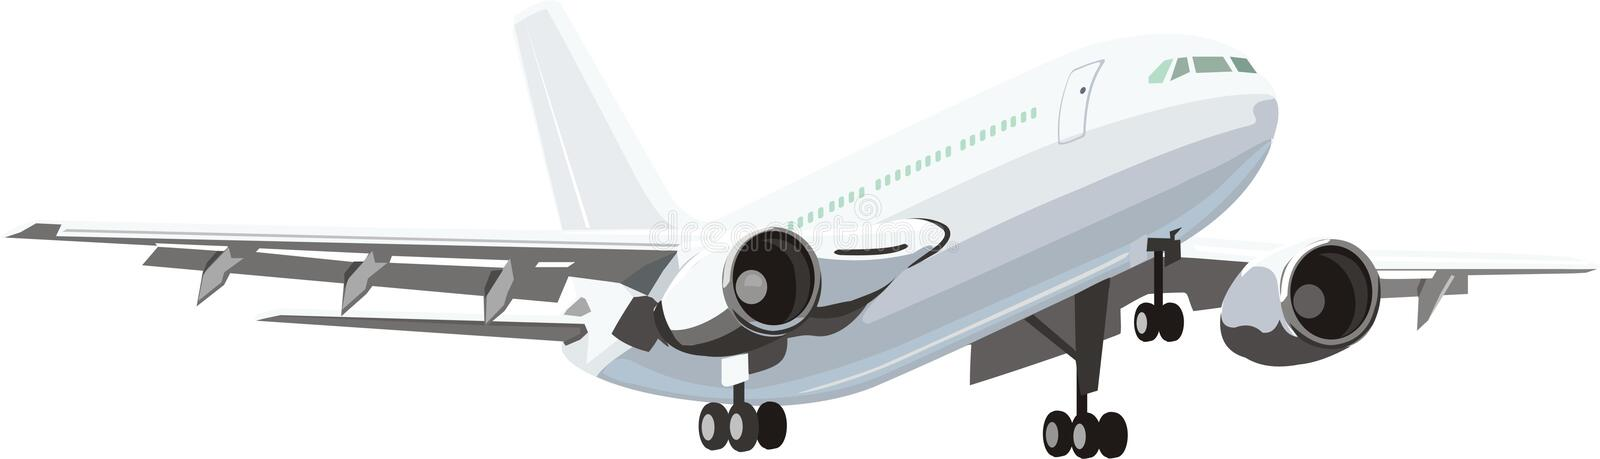 Avion civil illustration libre de droits